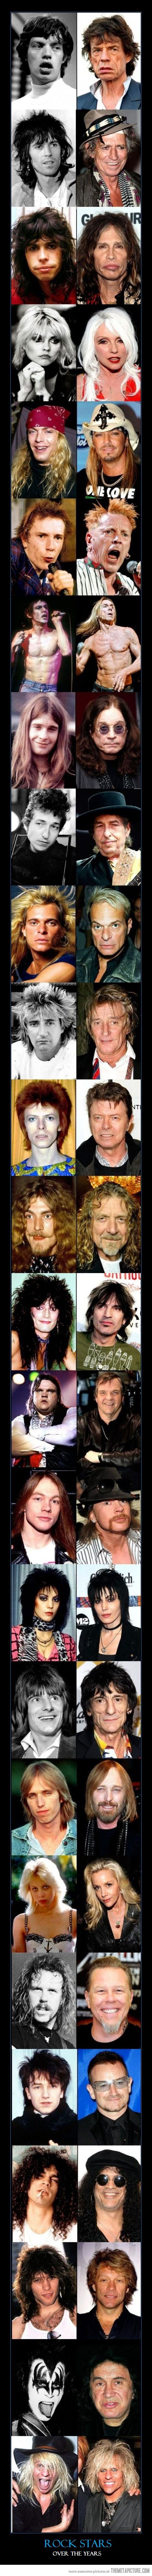 rock legends young old